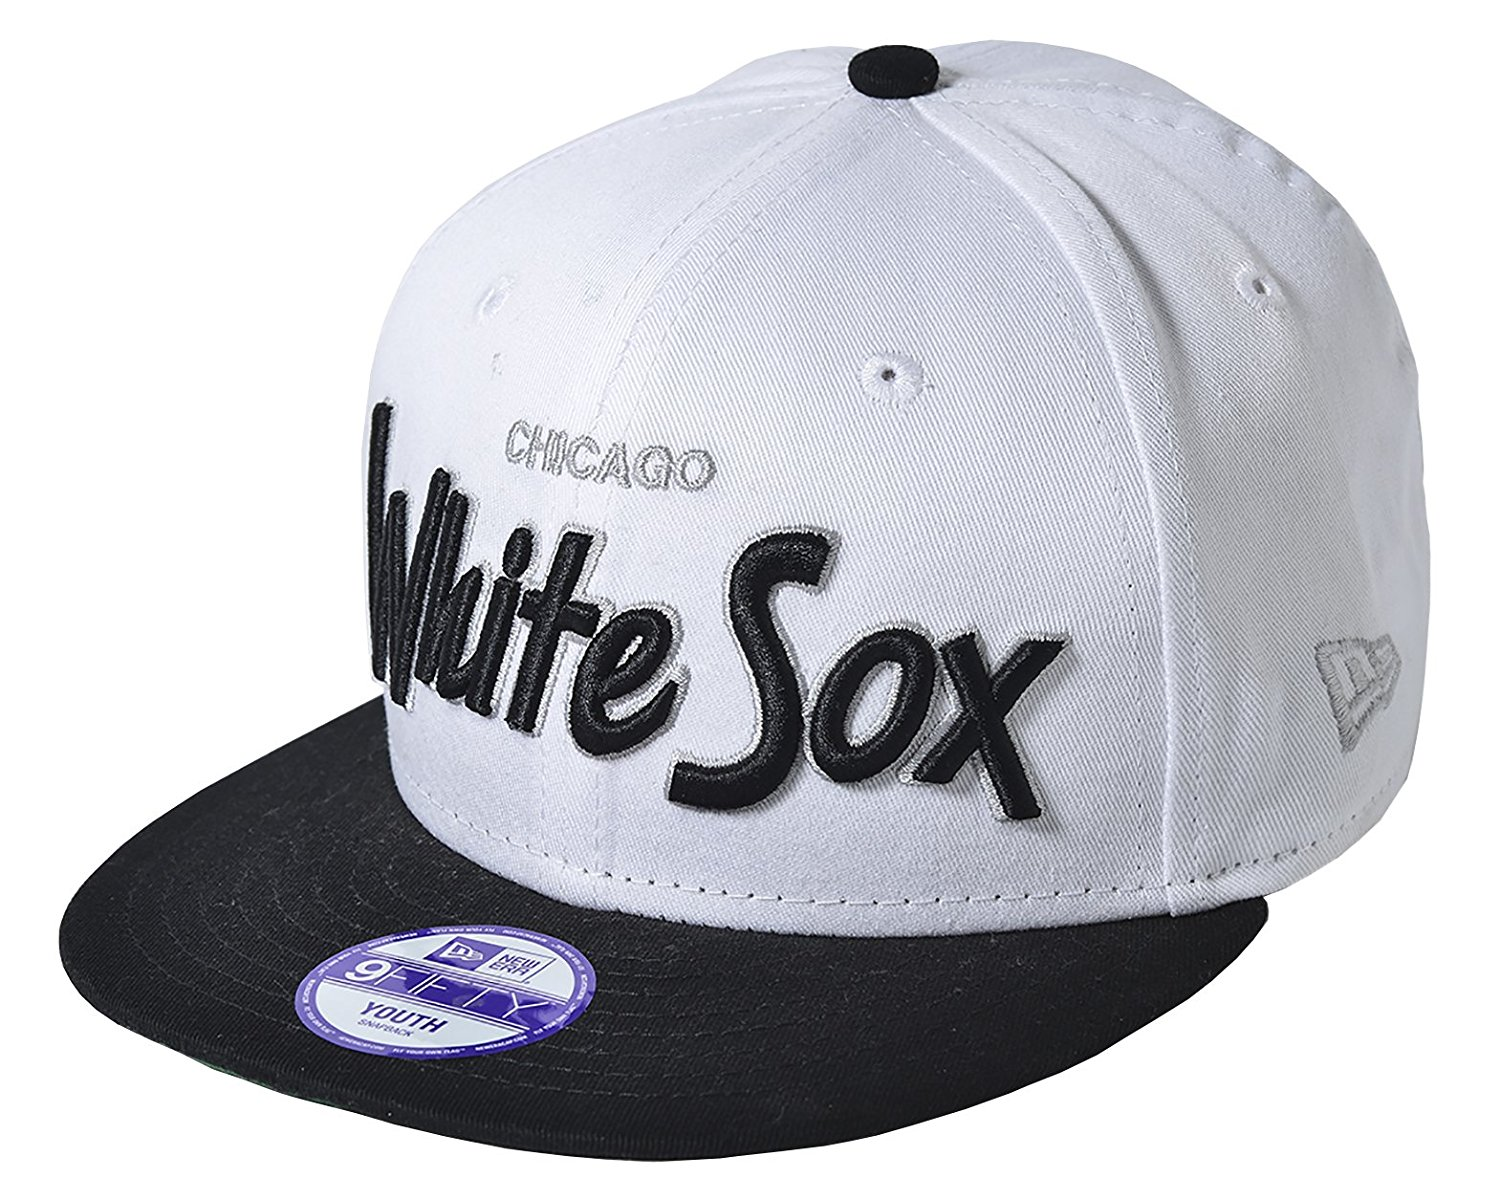 c96830433b7 Get Quotations · New Era Youth Chicago White Sox MLB Script Team Logo  9FIFTY Snapback cap